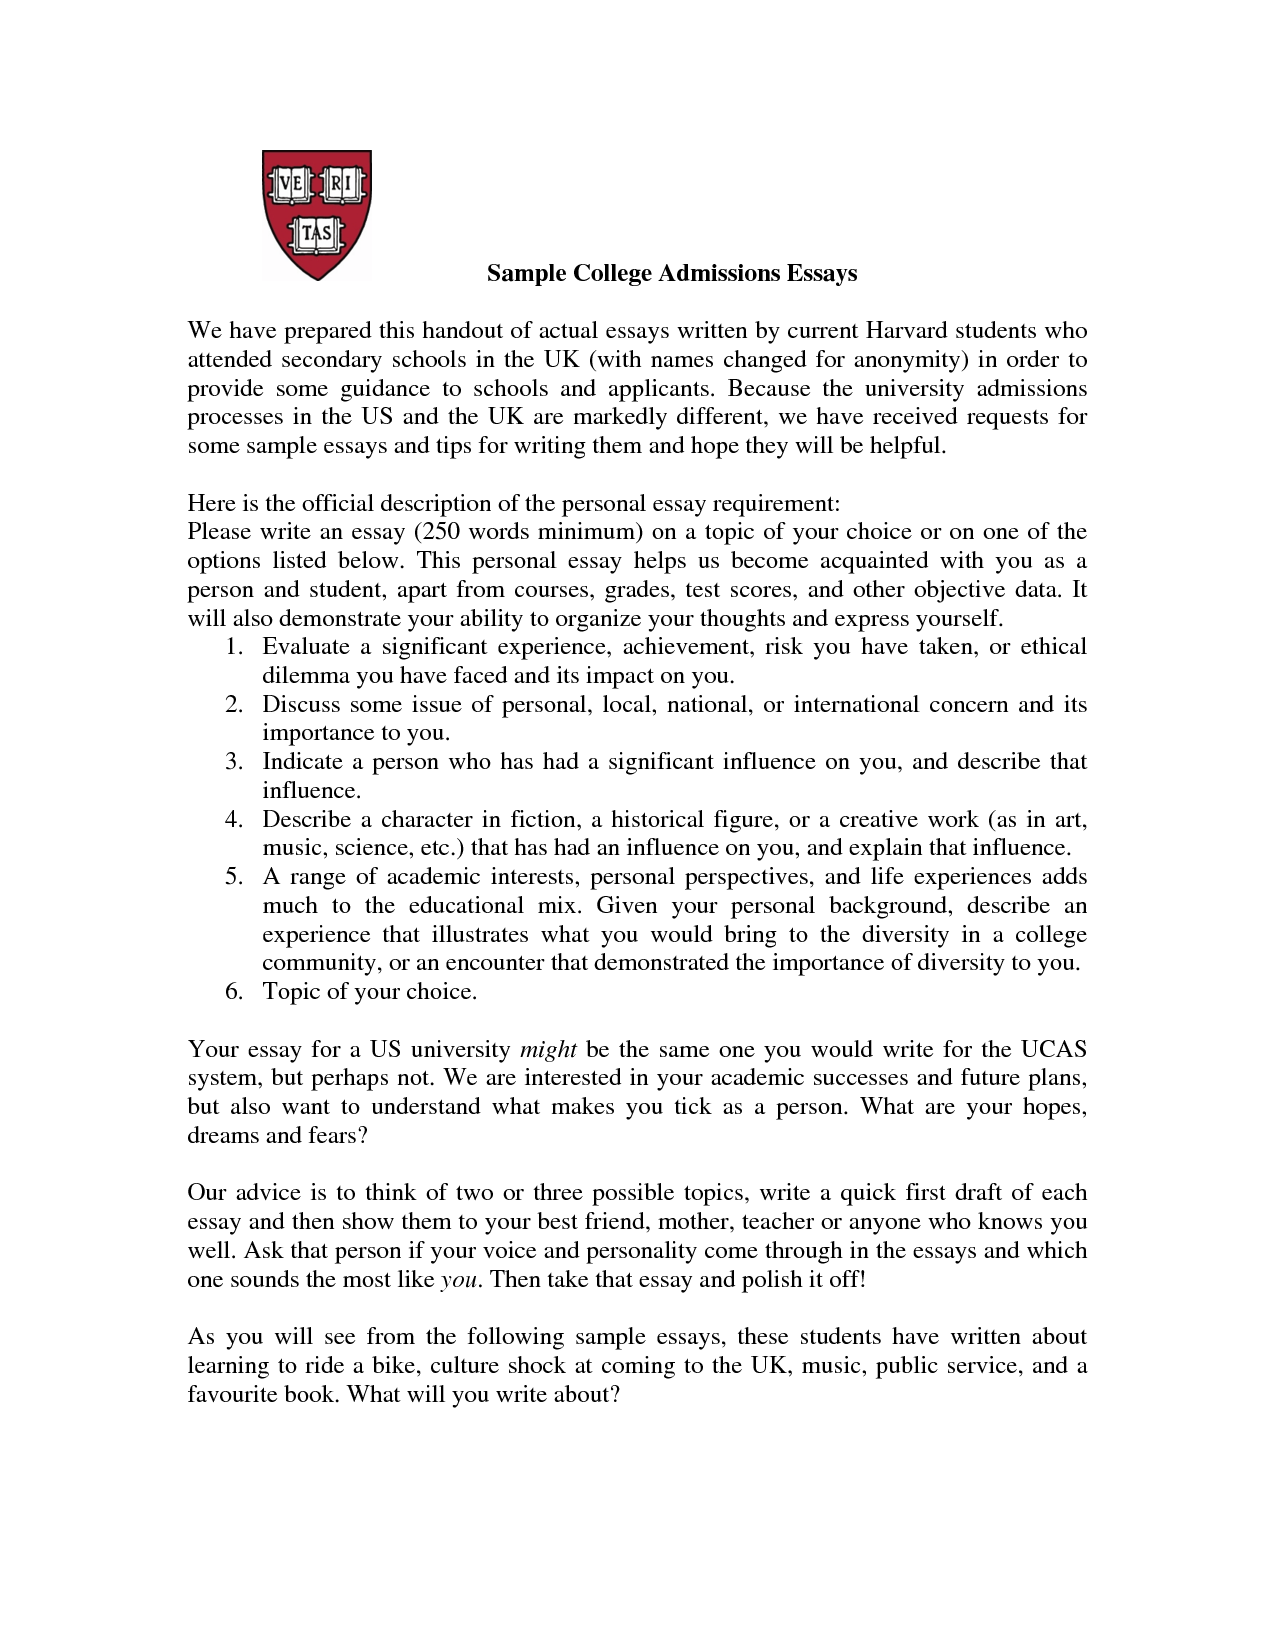 009 Dpy4cpaqnd Essay Example Sample High School Admission Unusual Essays Free Full